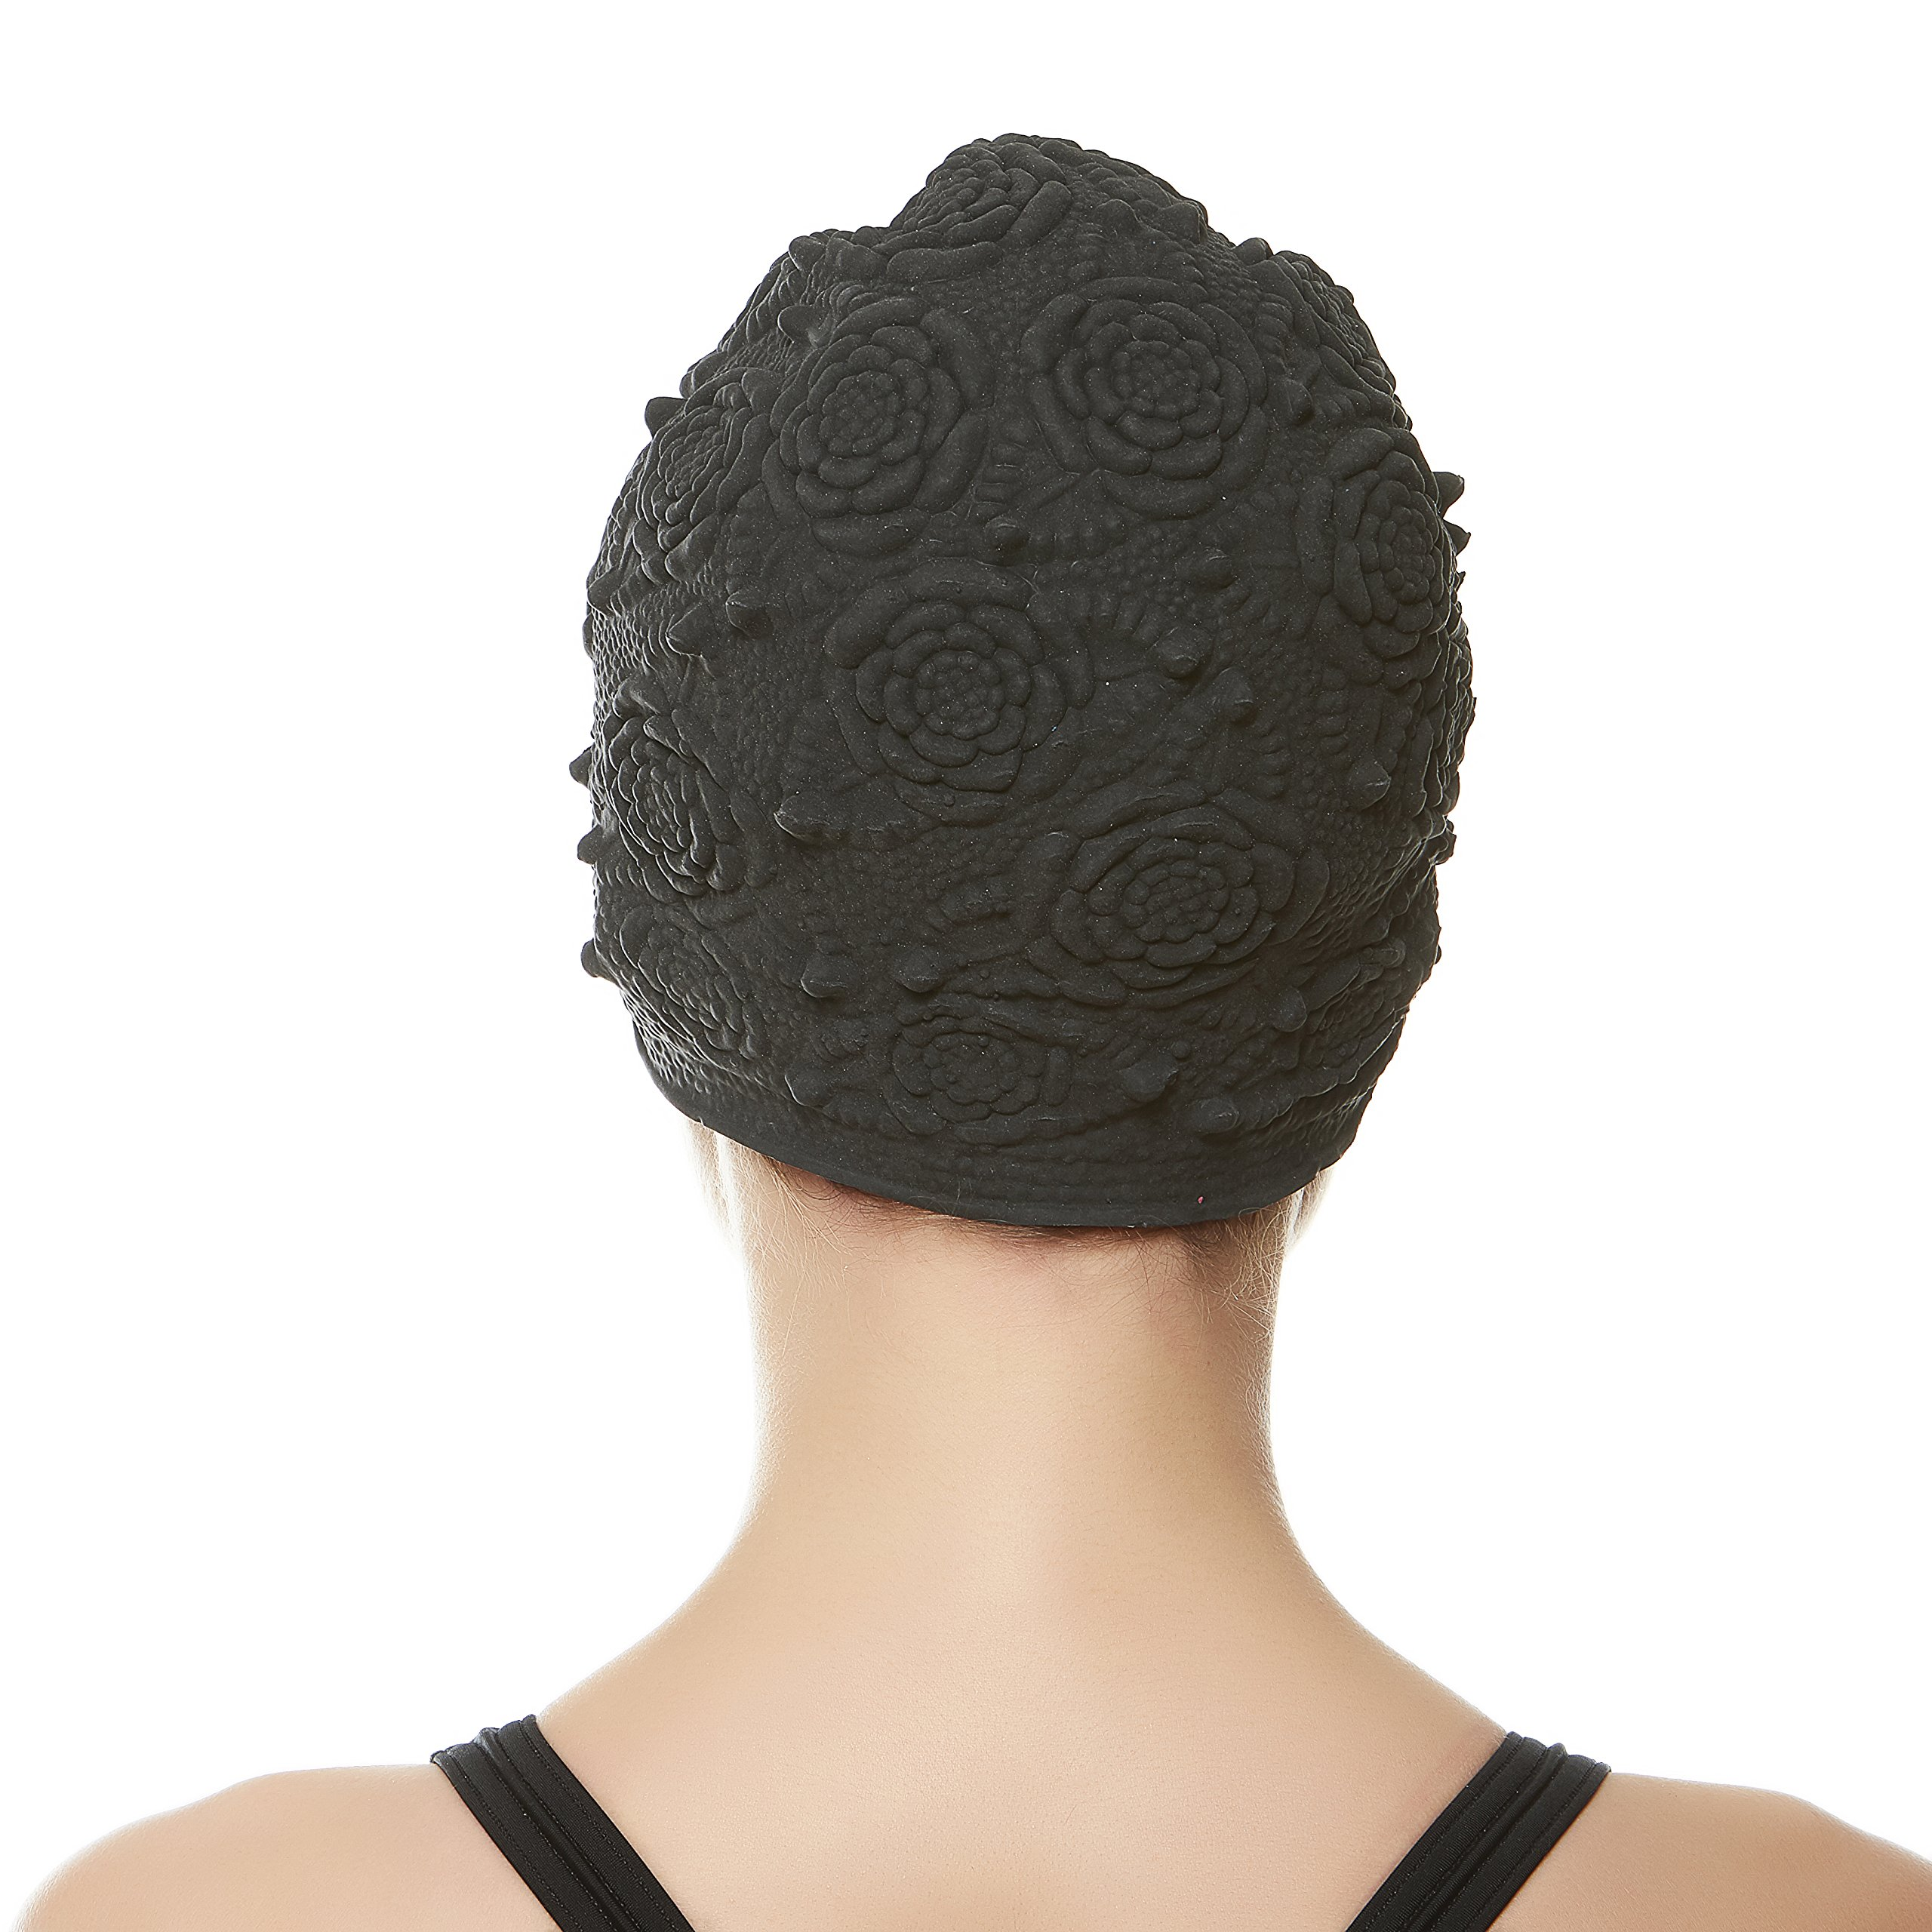 1d19a3c07f5 Beemo Swim Bathing Caps for Women/Girls Retro Style Latex with Embossed  Flower Pattern Ornament Swimming Hat Long & Short Hair | Team Immortal |  Forever Fit ...